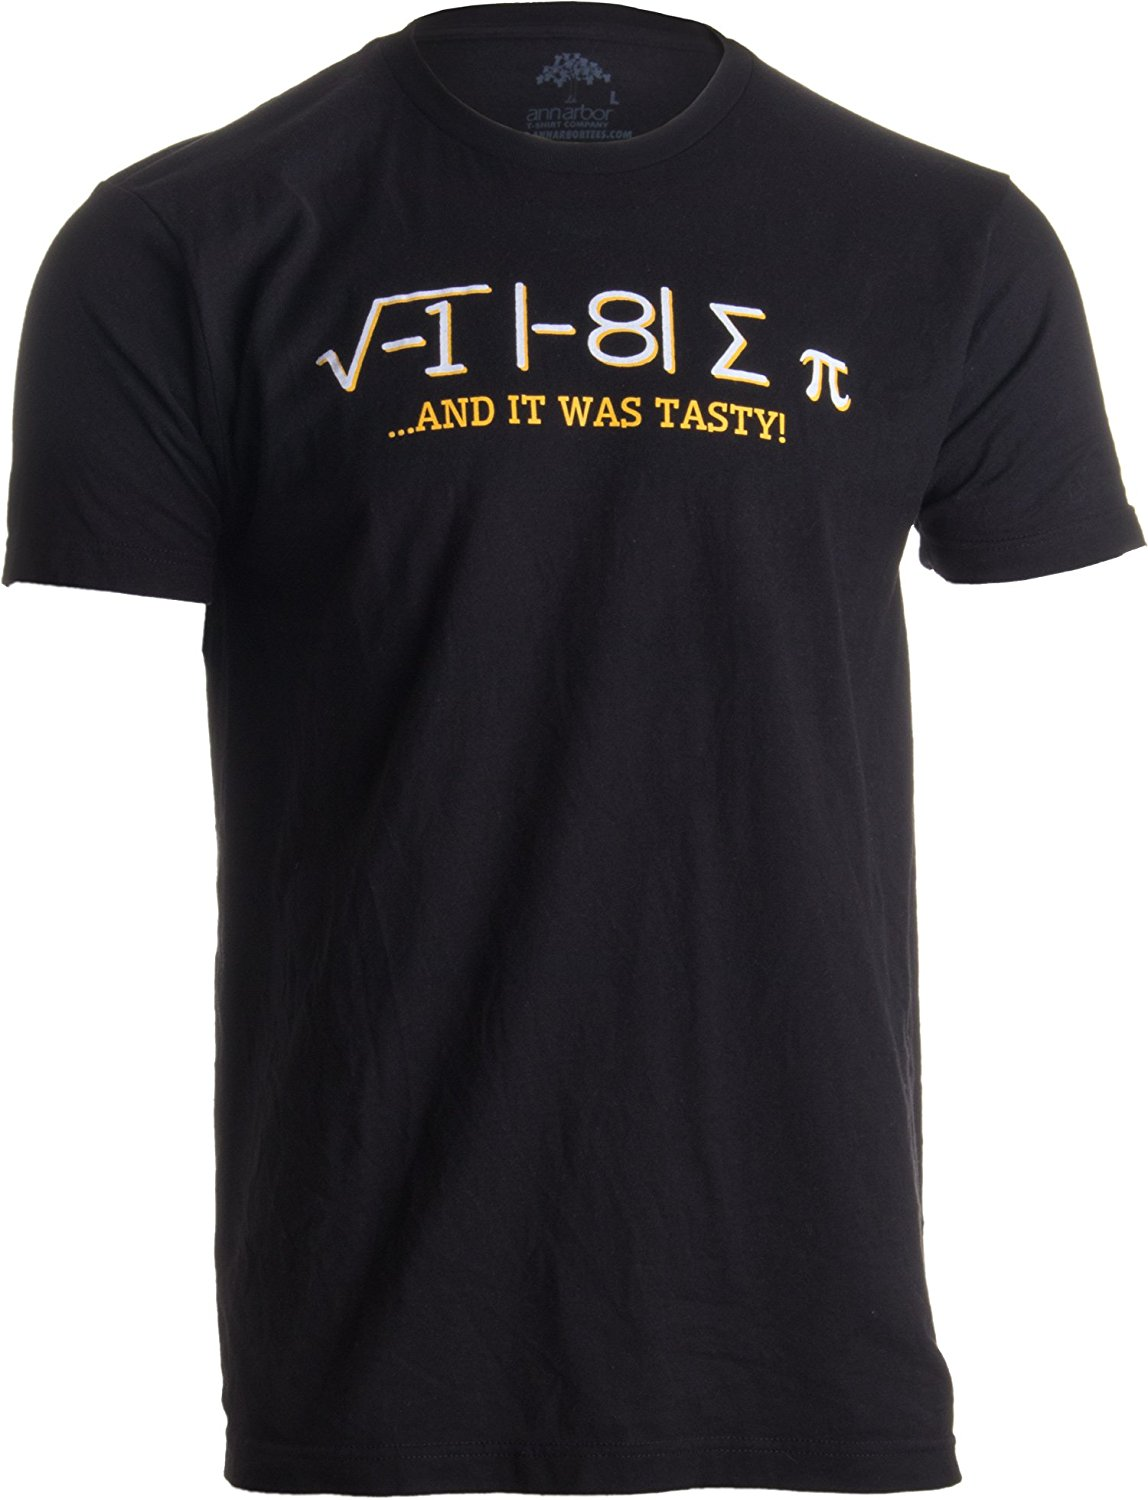 Ann Arbor T-shirt Co. I Ate Some Pi, and it was Tasty  Funny Delicious Math Teacher Humor Pun T-shirt